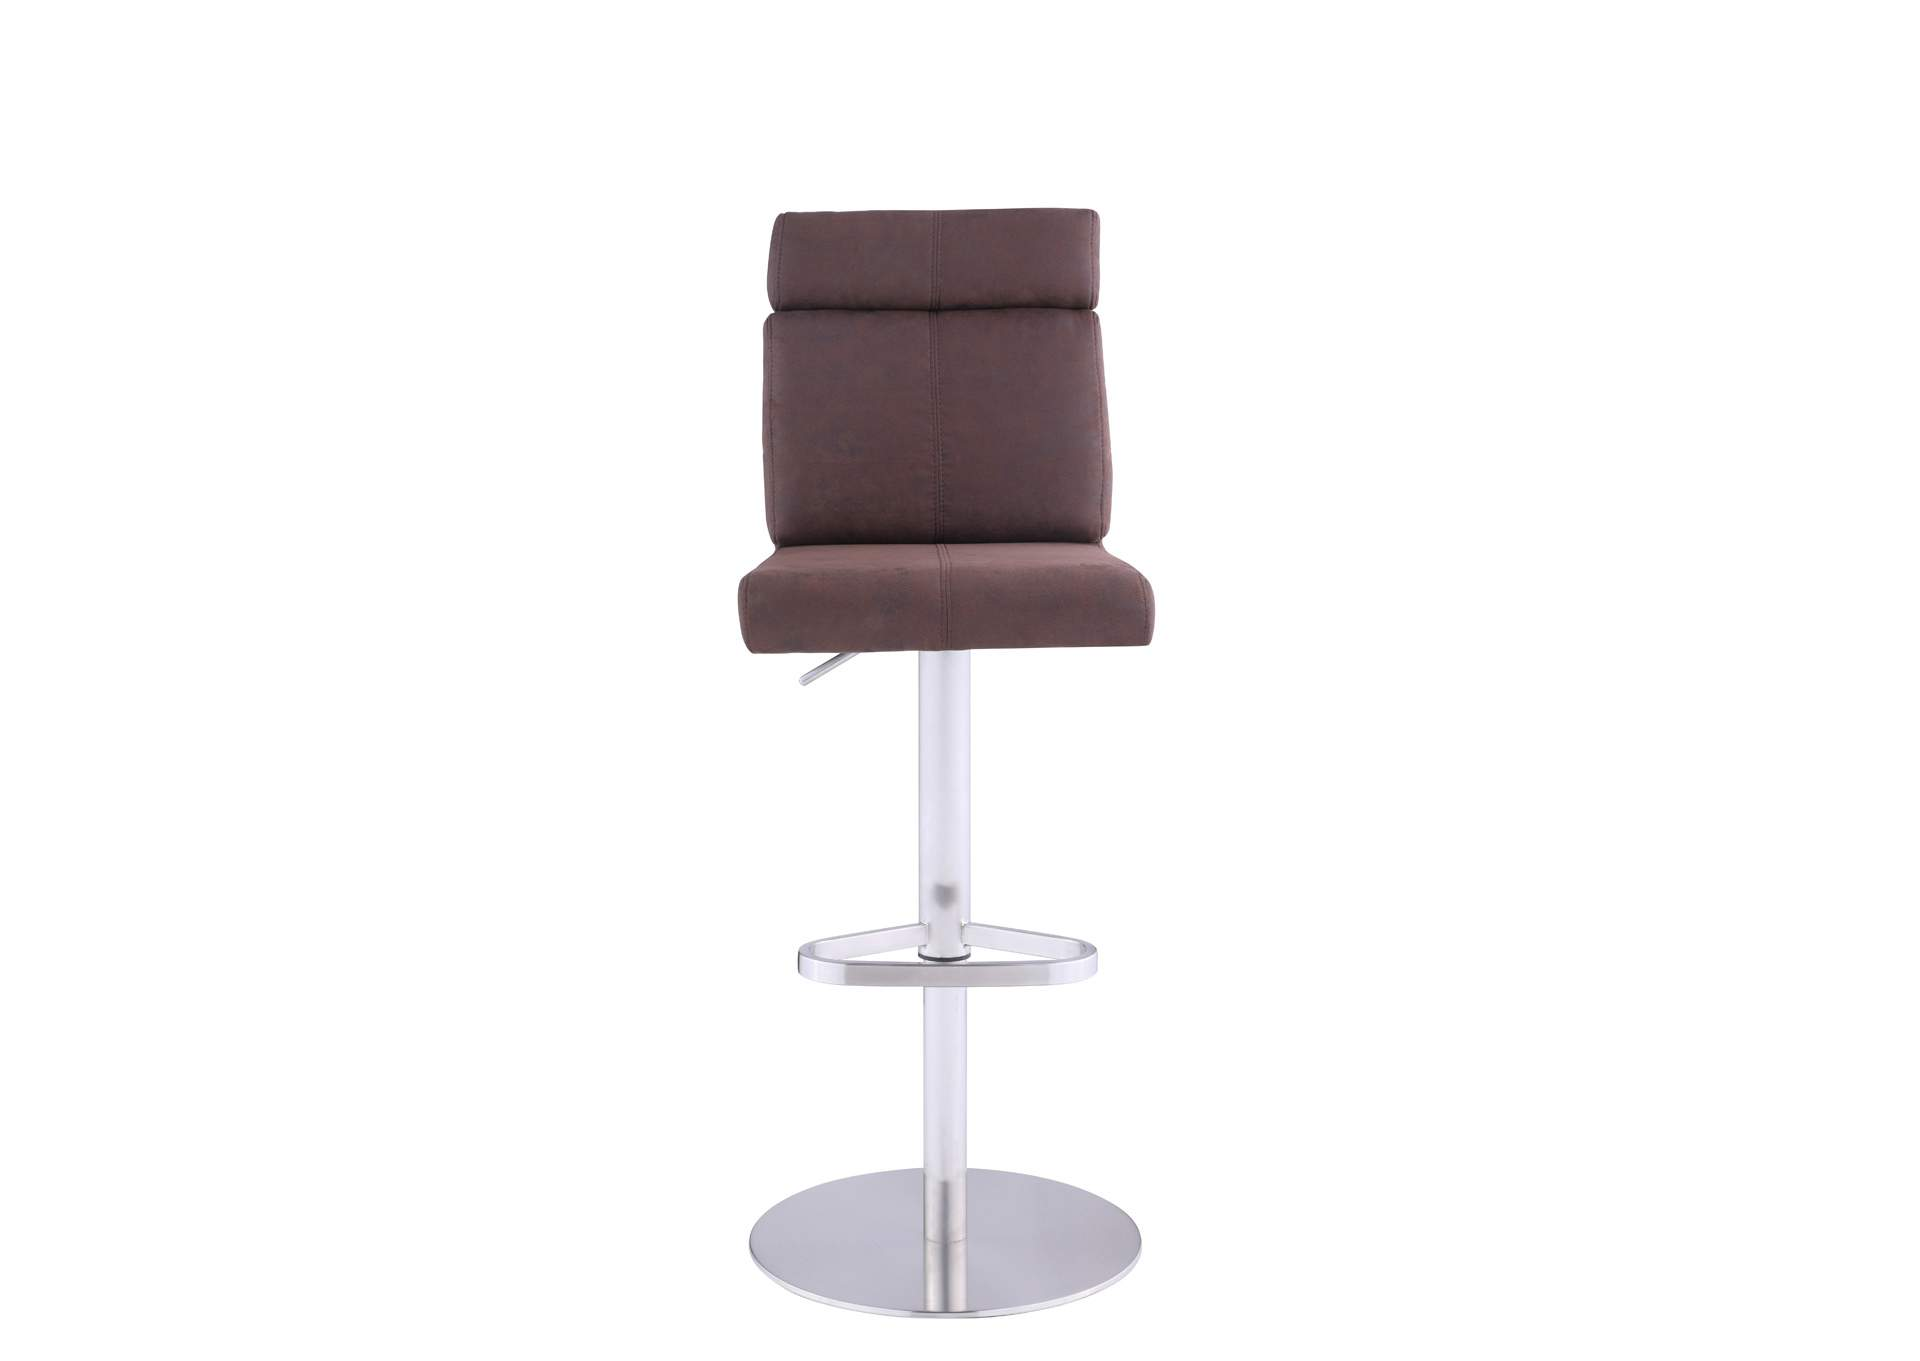 Brown Plush Seat Adjustable Stool,Chintaly Imports